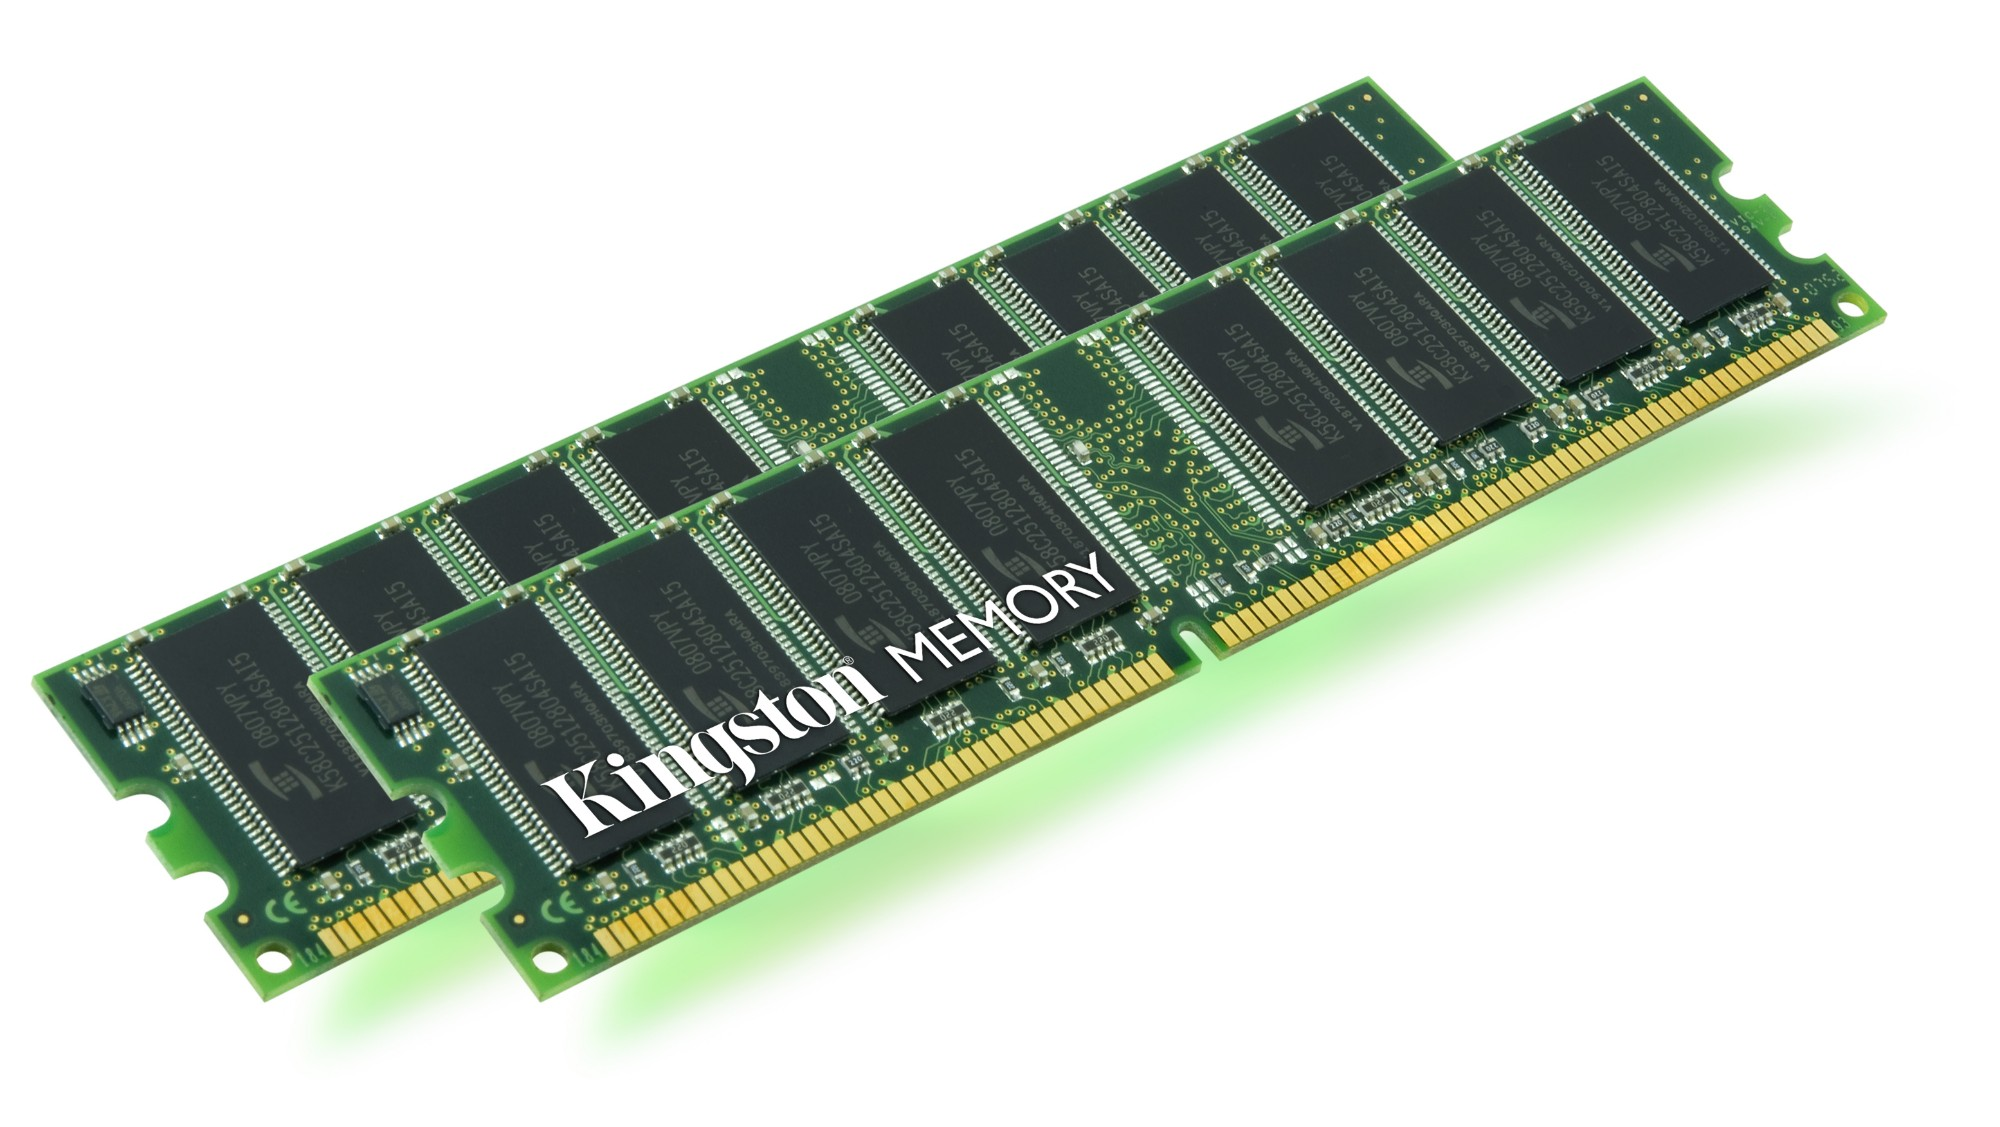 Kingston Technology System Specific Memory 2GB 667MHz 2GB DDR2 667MHz memory module